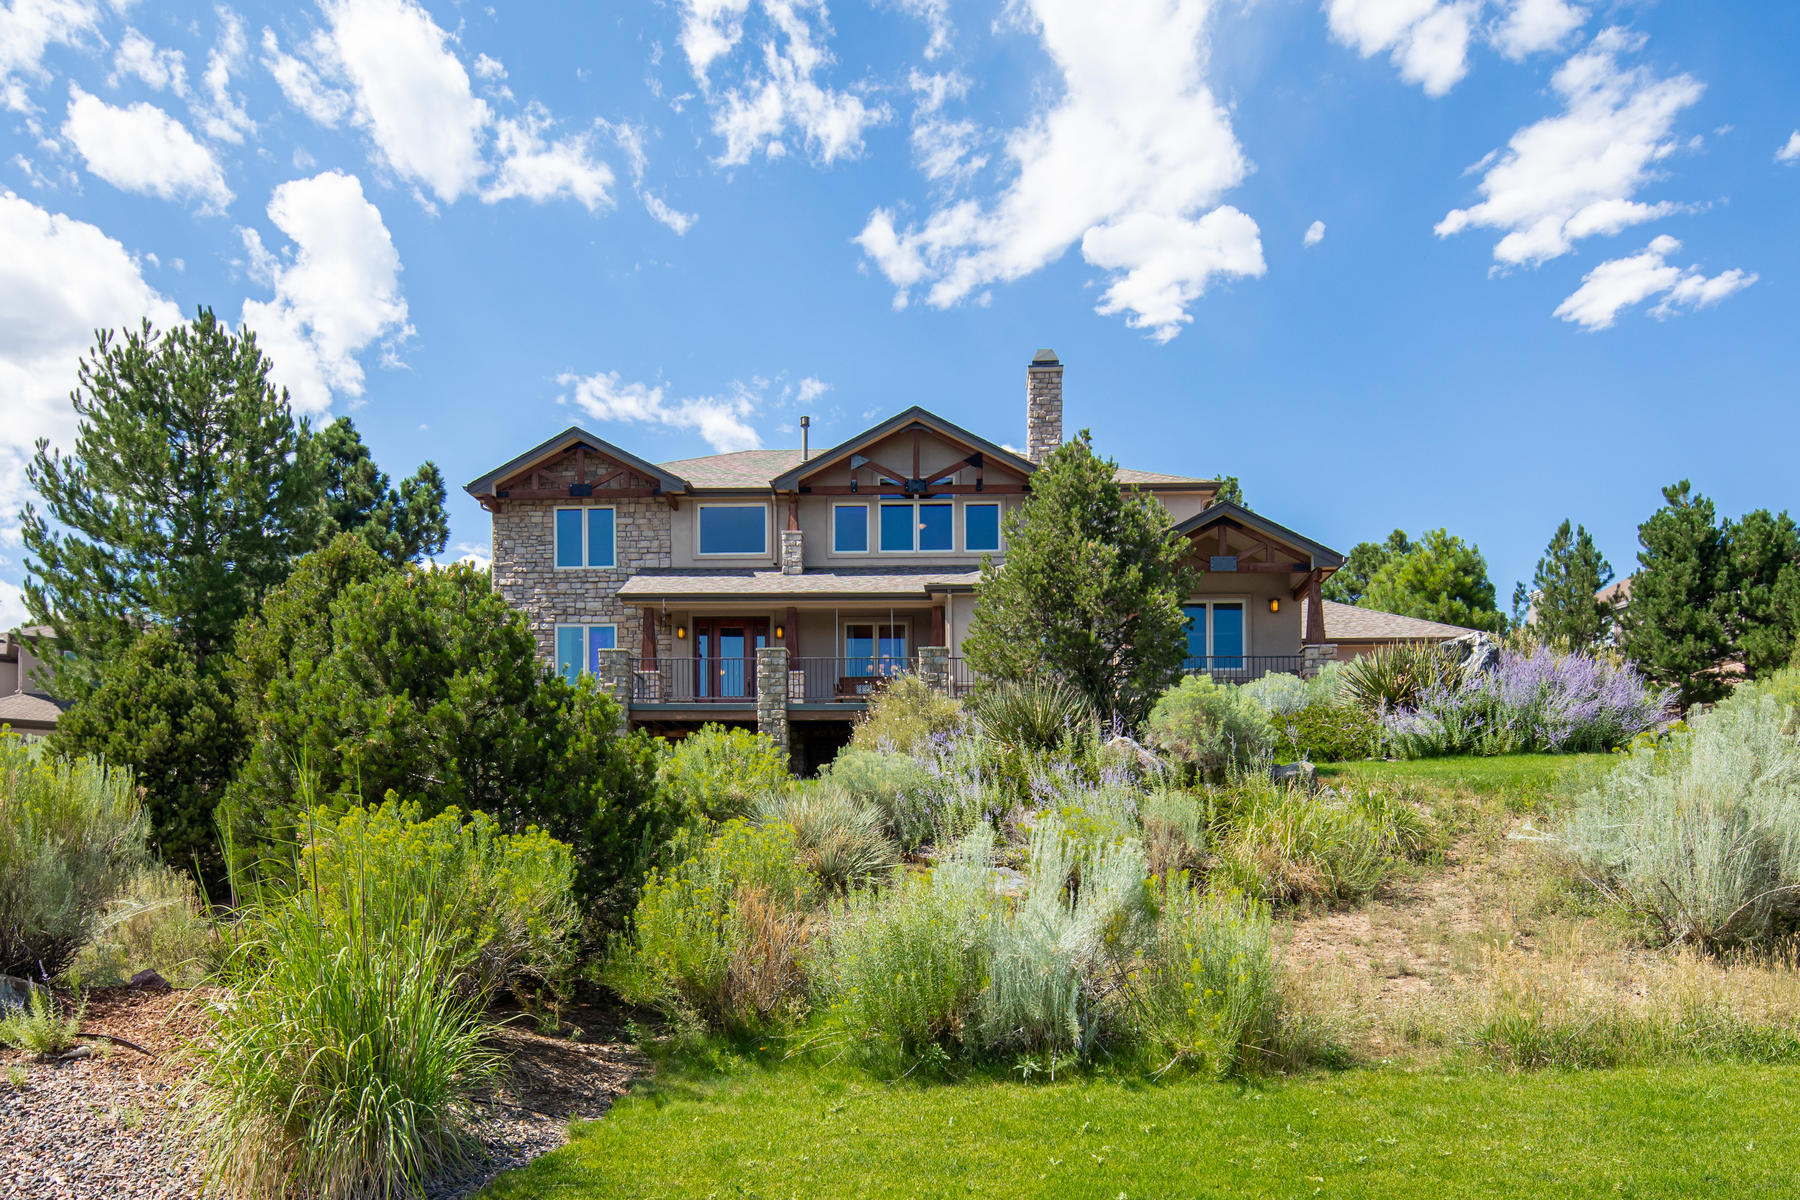 Single Family Homes for Sale at Exceptional Outdoor Living and Fabulous Mountain Views 5415 Sage Thrasher Rd Parker, Colorado 80134 United States